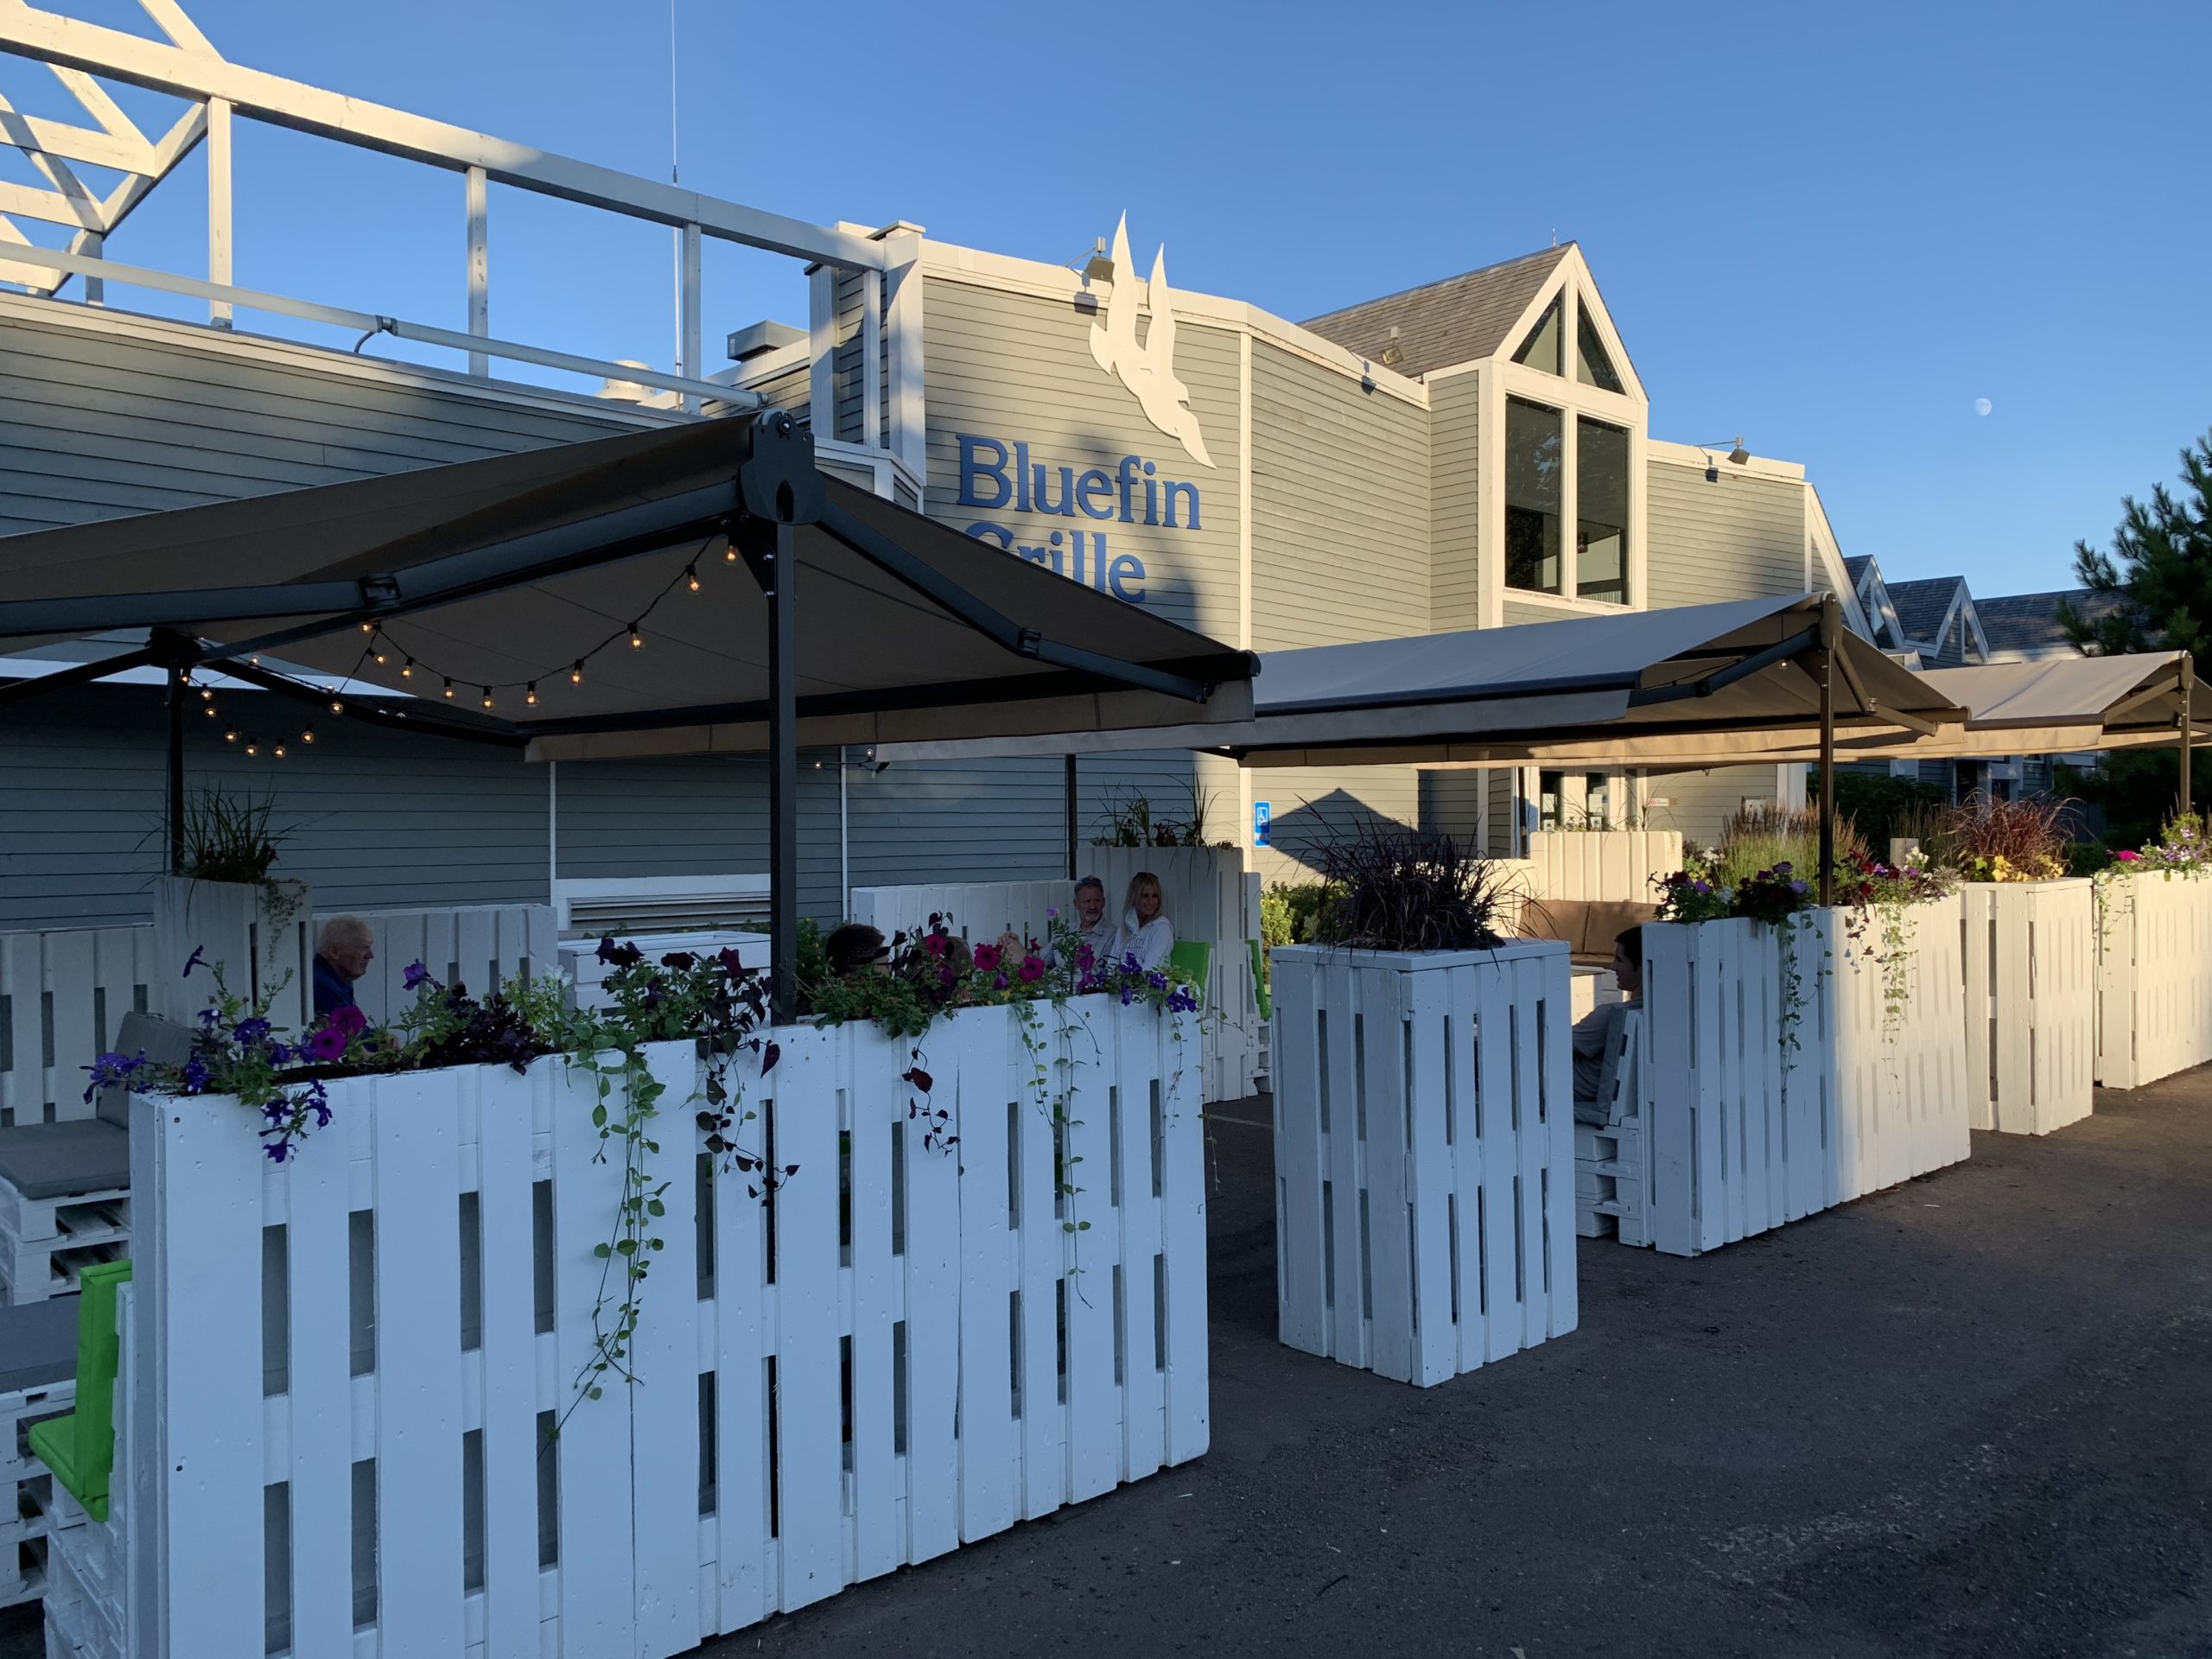 Bluefin Grille Outdoor Dining - New Patio